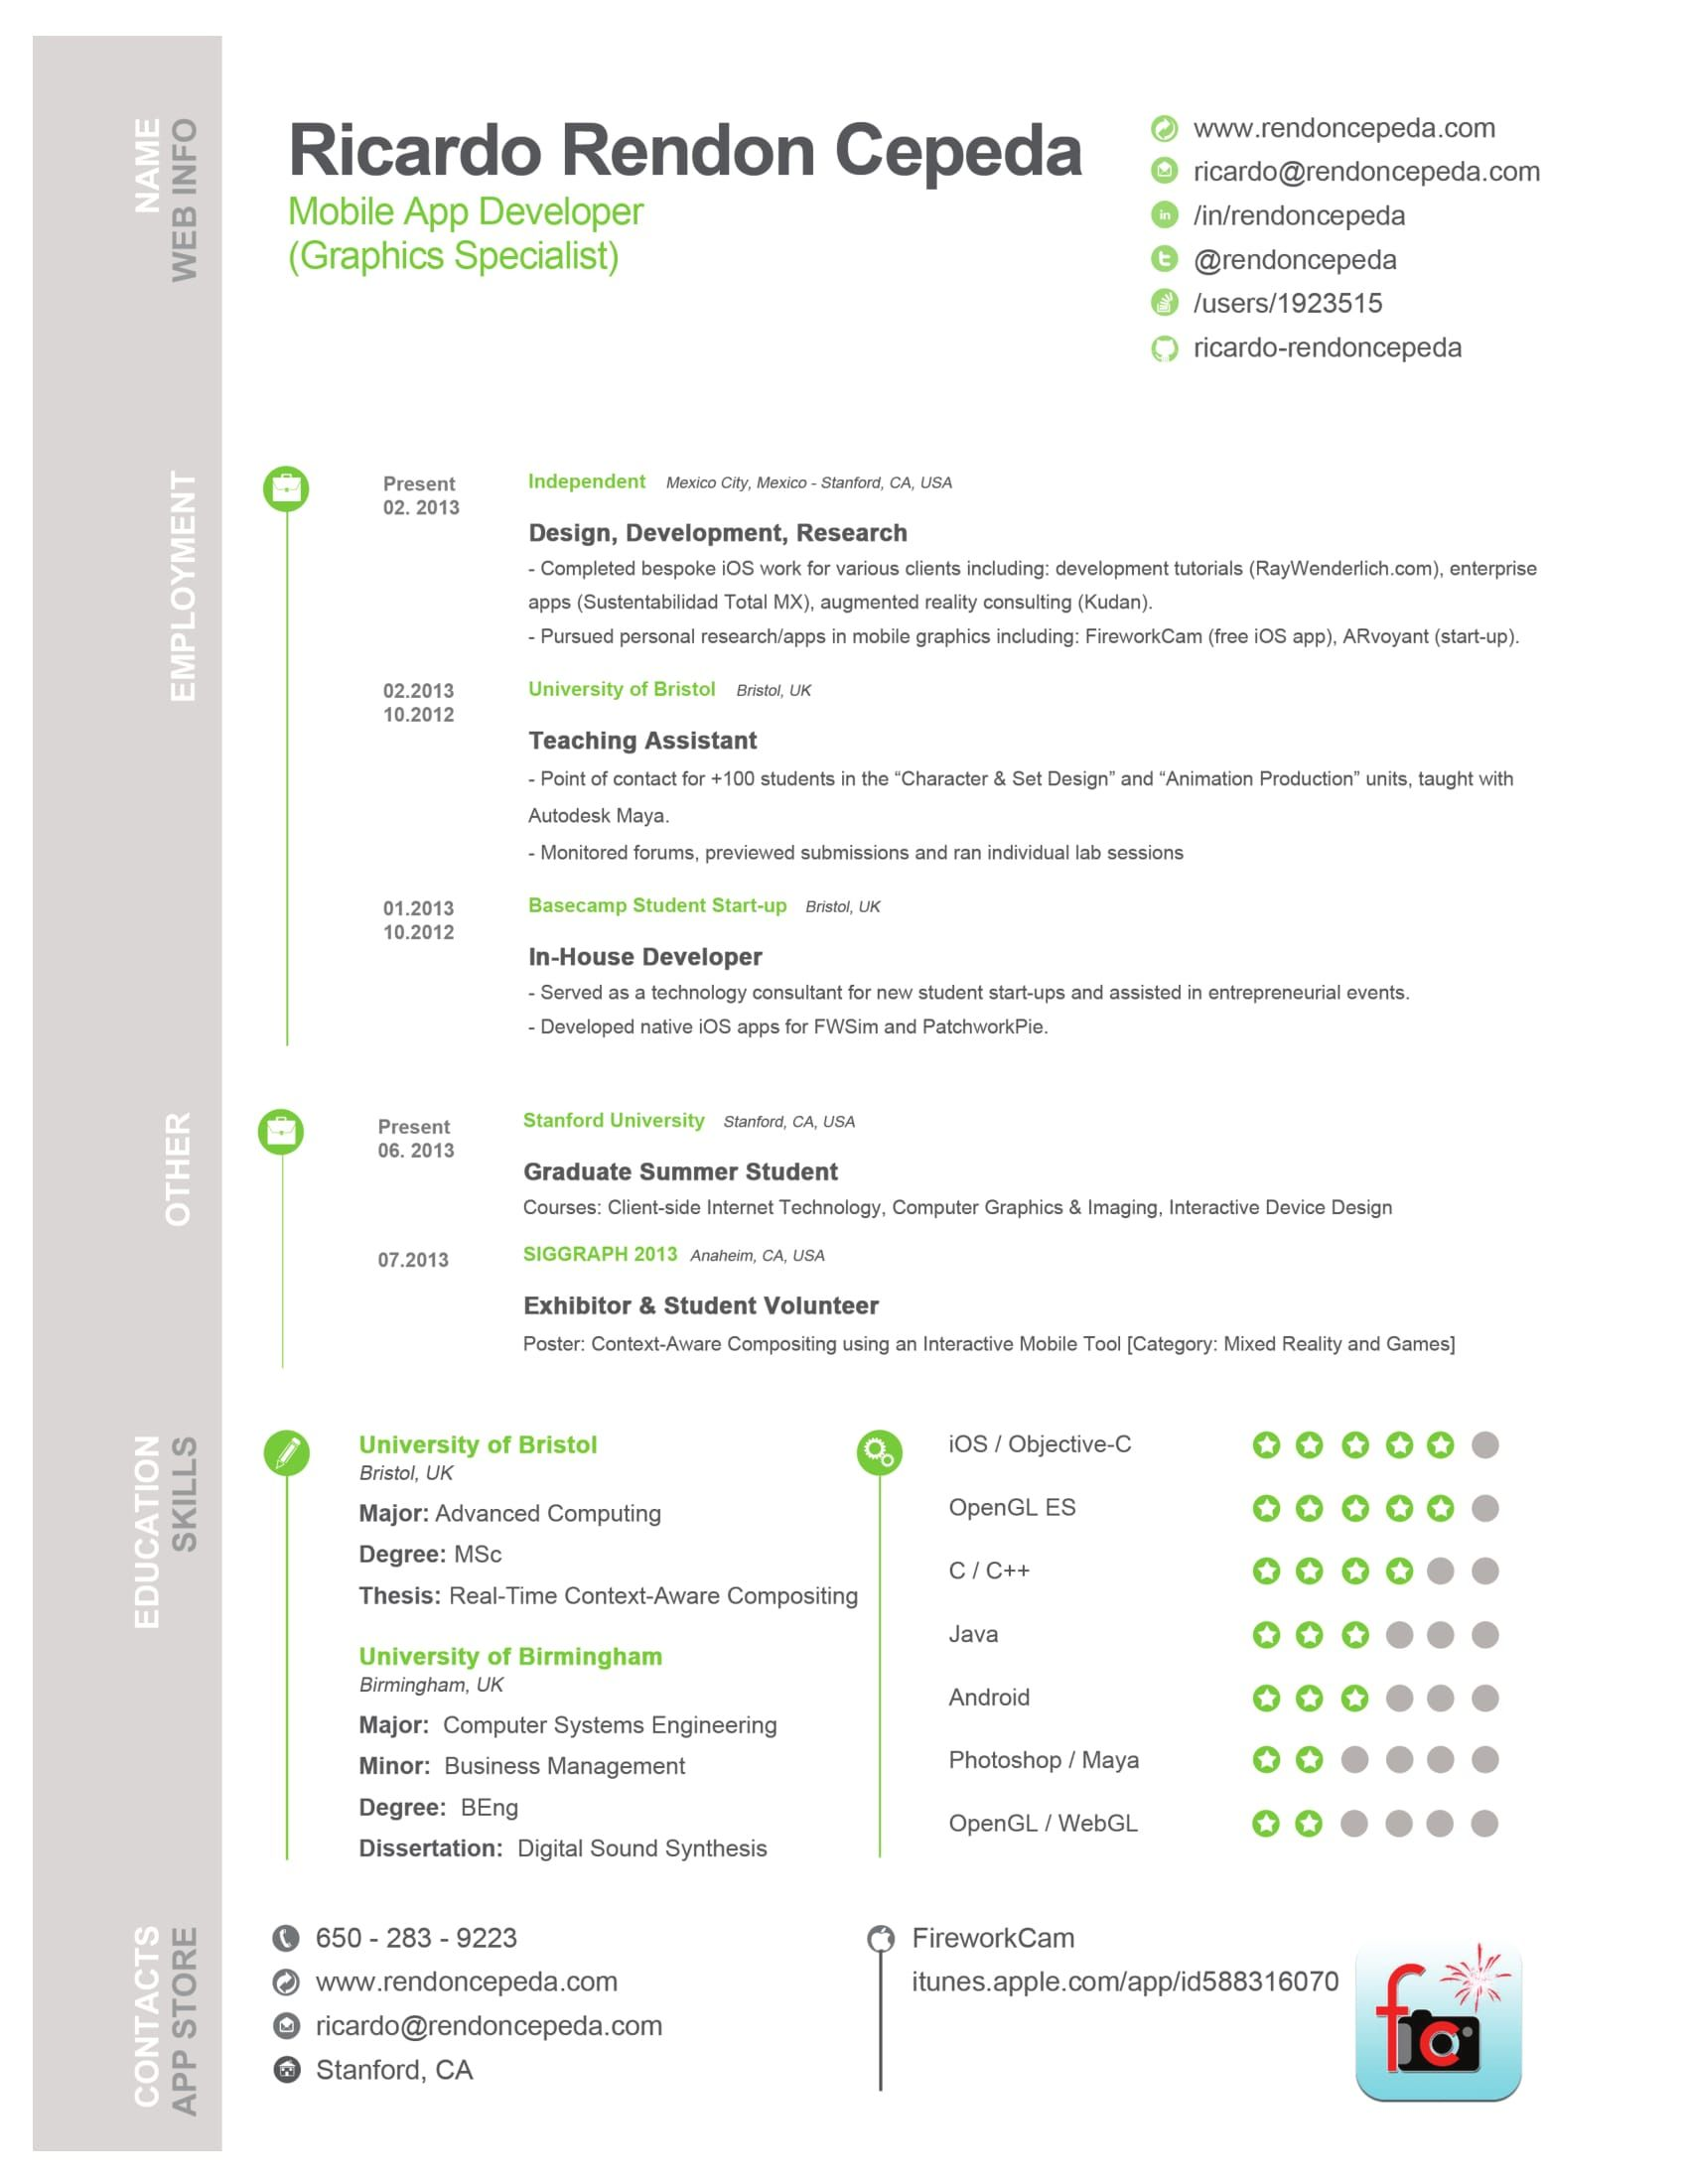 mobile app developer resume Resume templates, Resume